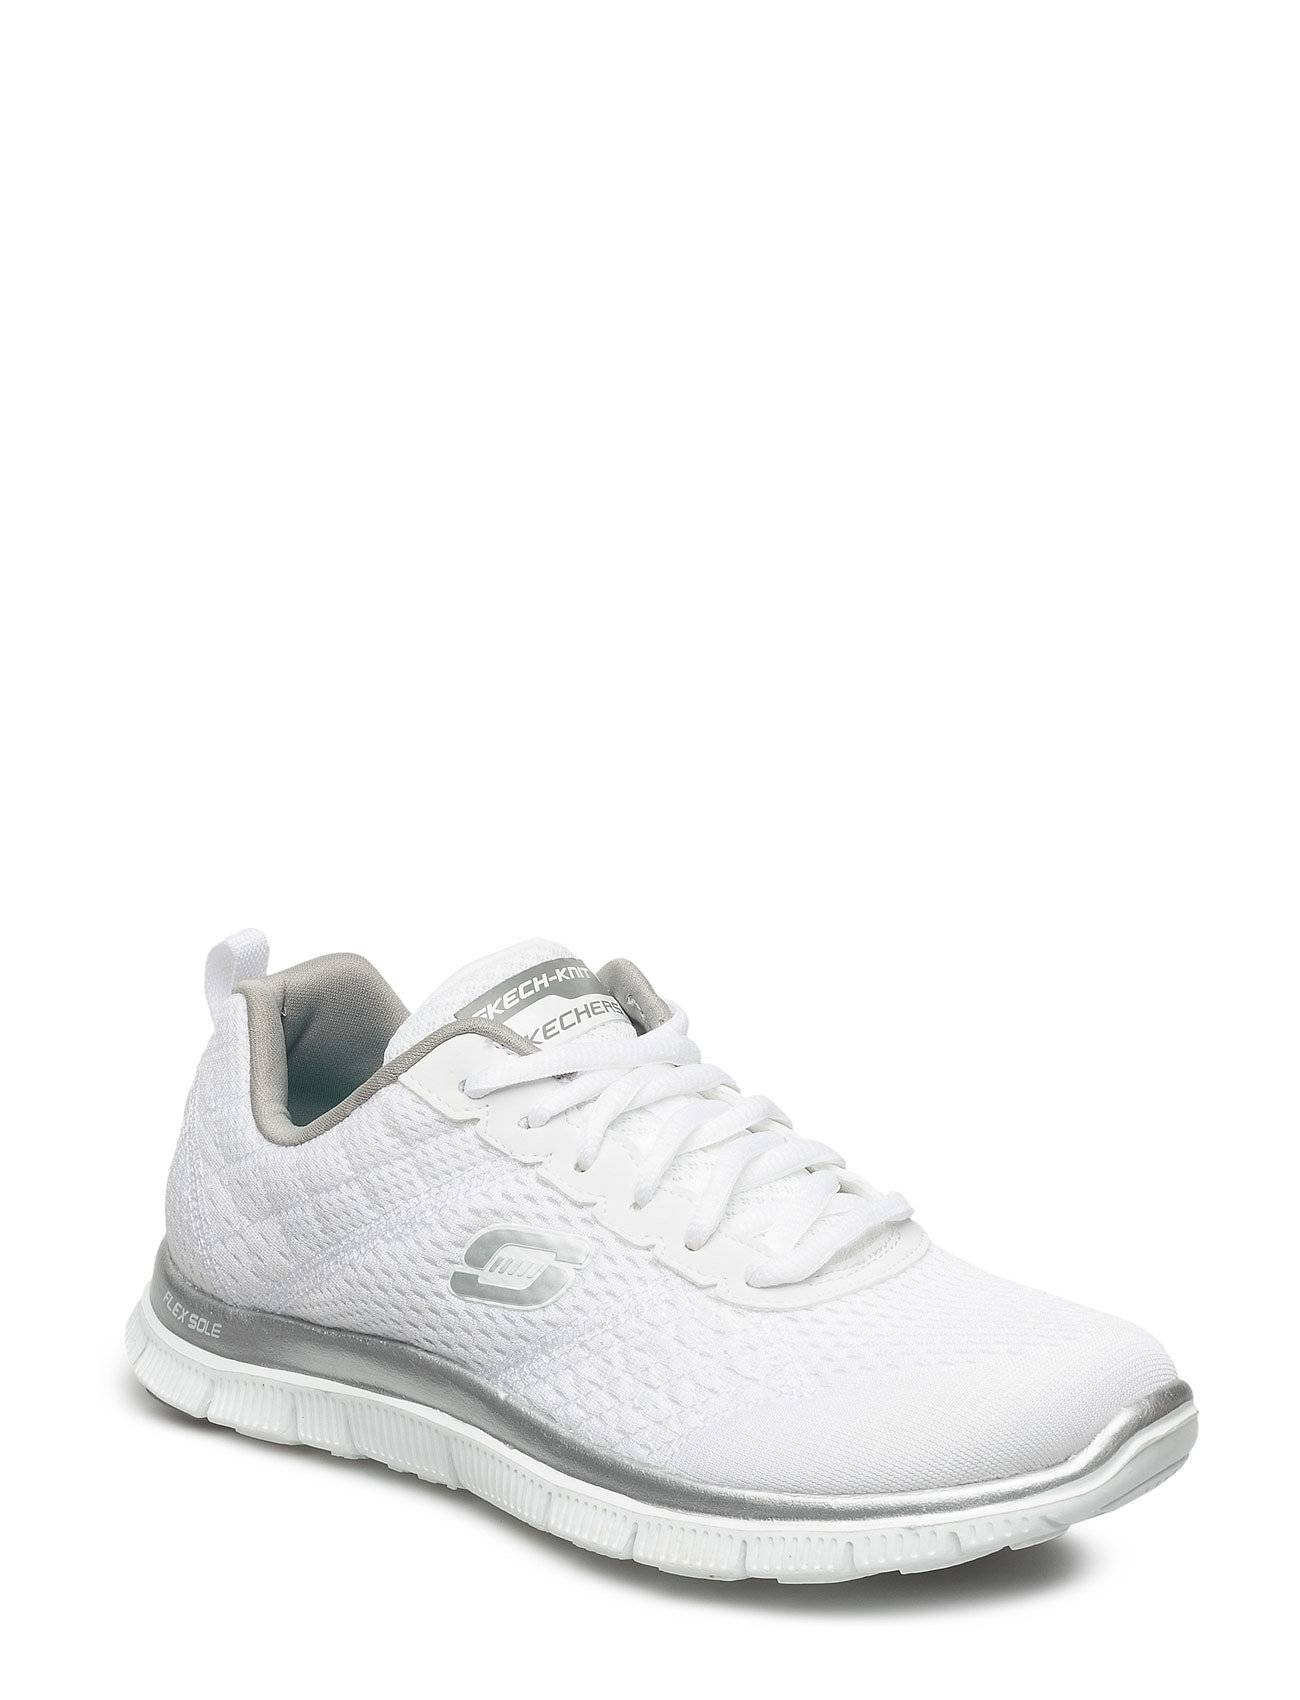 Skechers Womans Flex Appeal - Obvious Choice